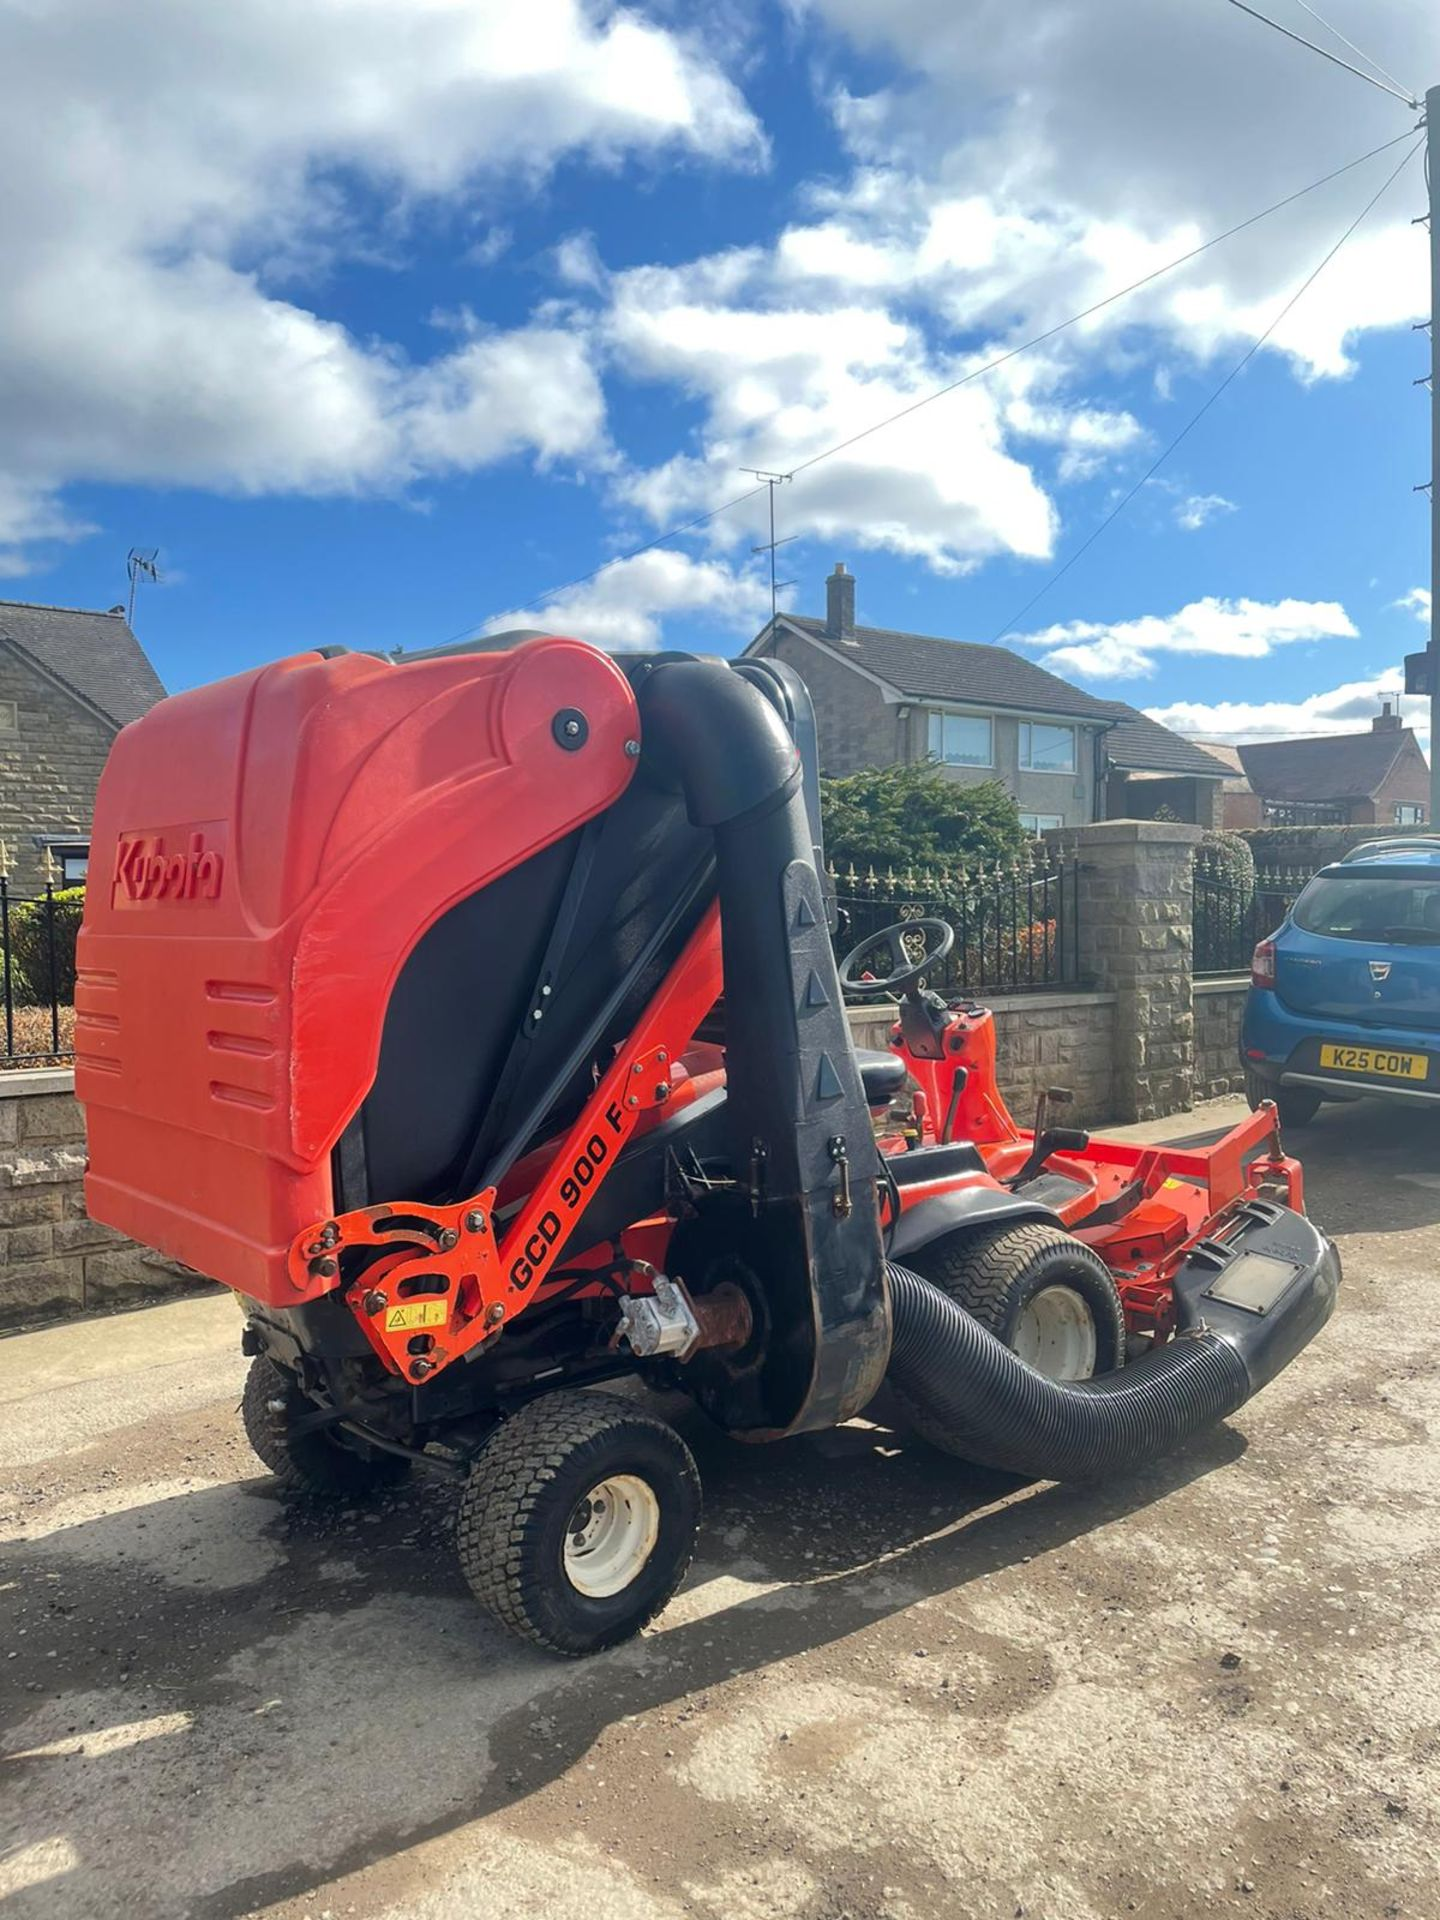 2011 KUBOTA F3680 OUT FRONT RIDE ON LAWN MOWER HIGH TIP COLLECTOR, 4 WHEEL DRIVE, PLUS VAT - Image 4 of 7